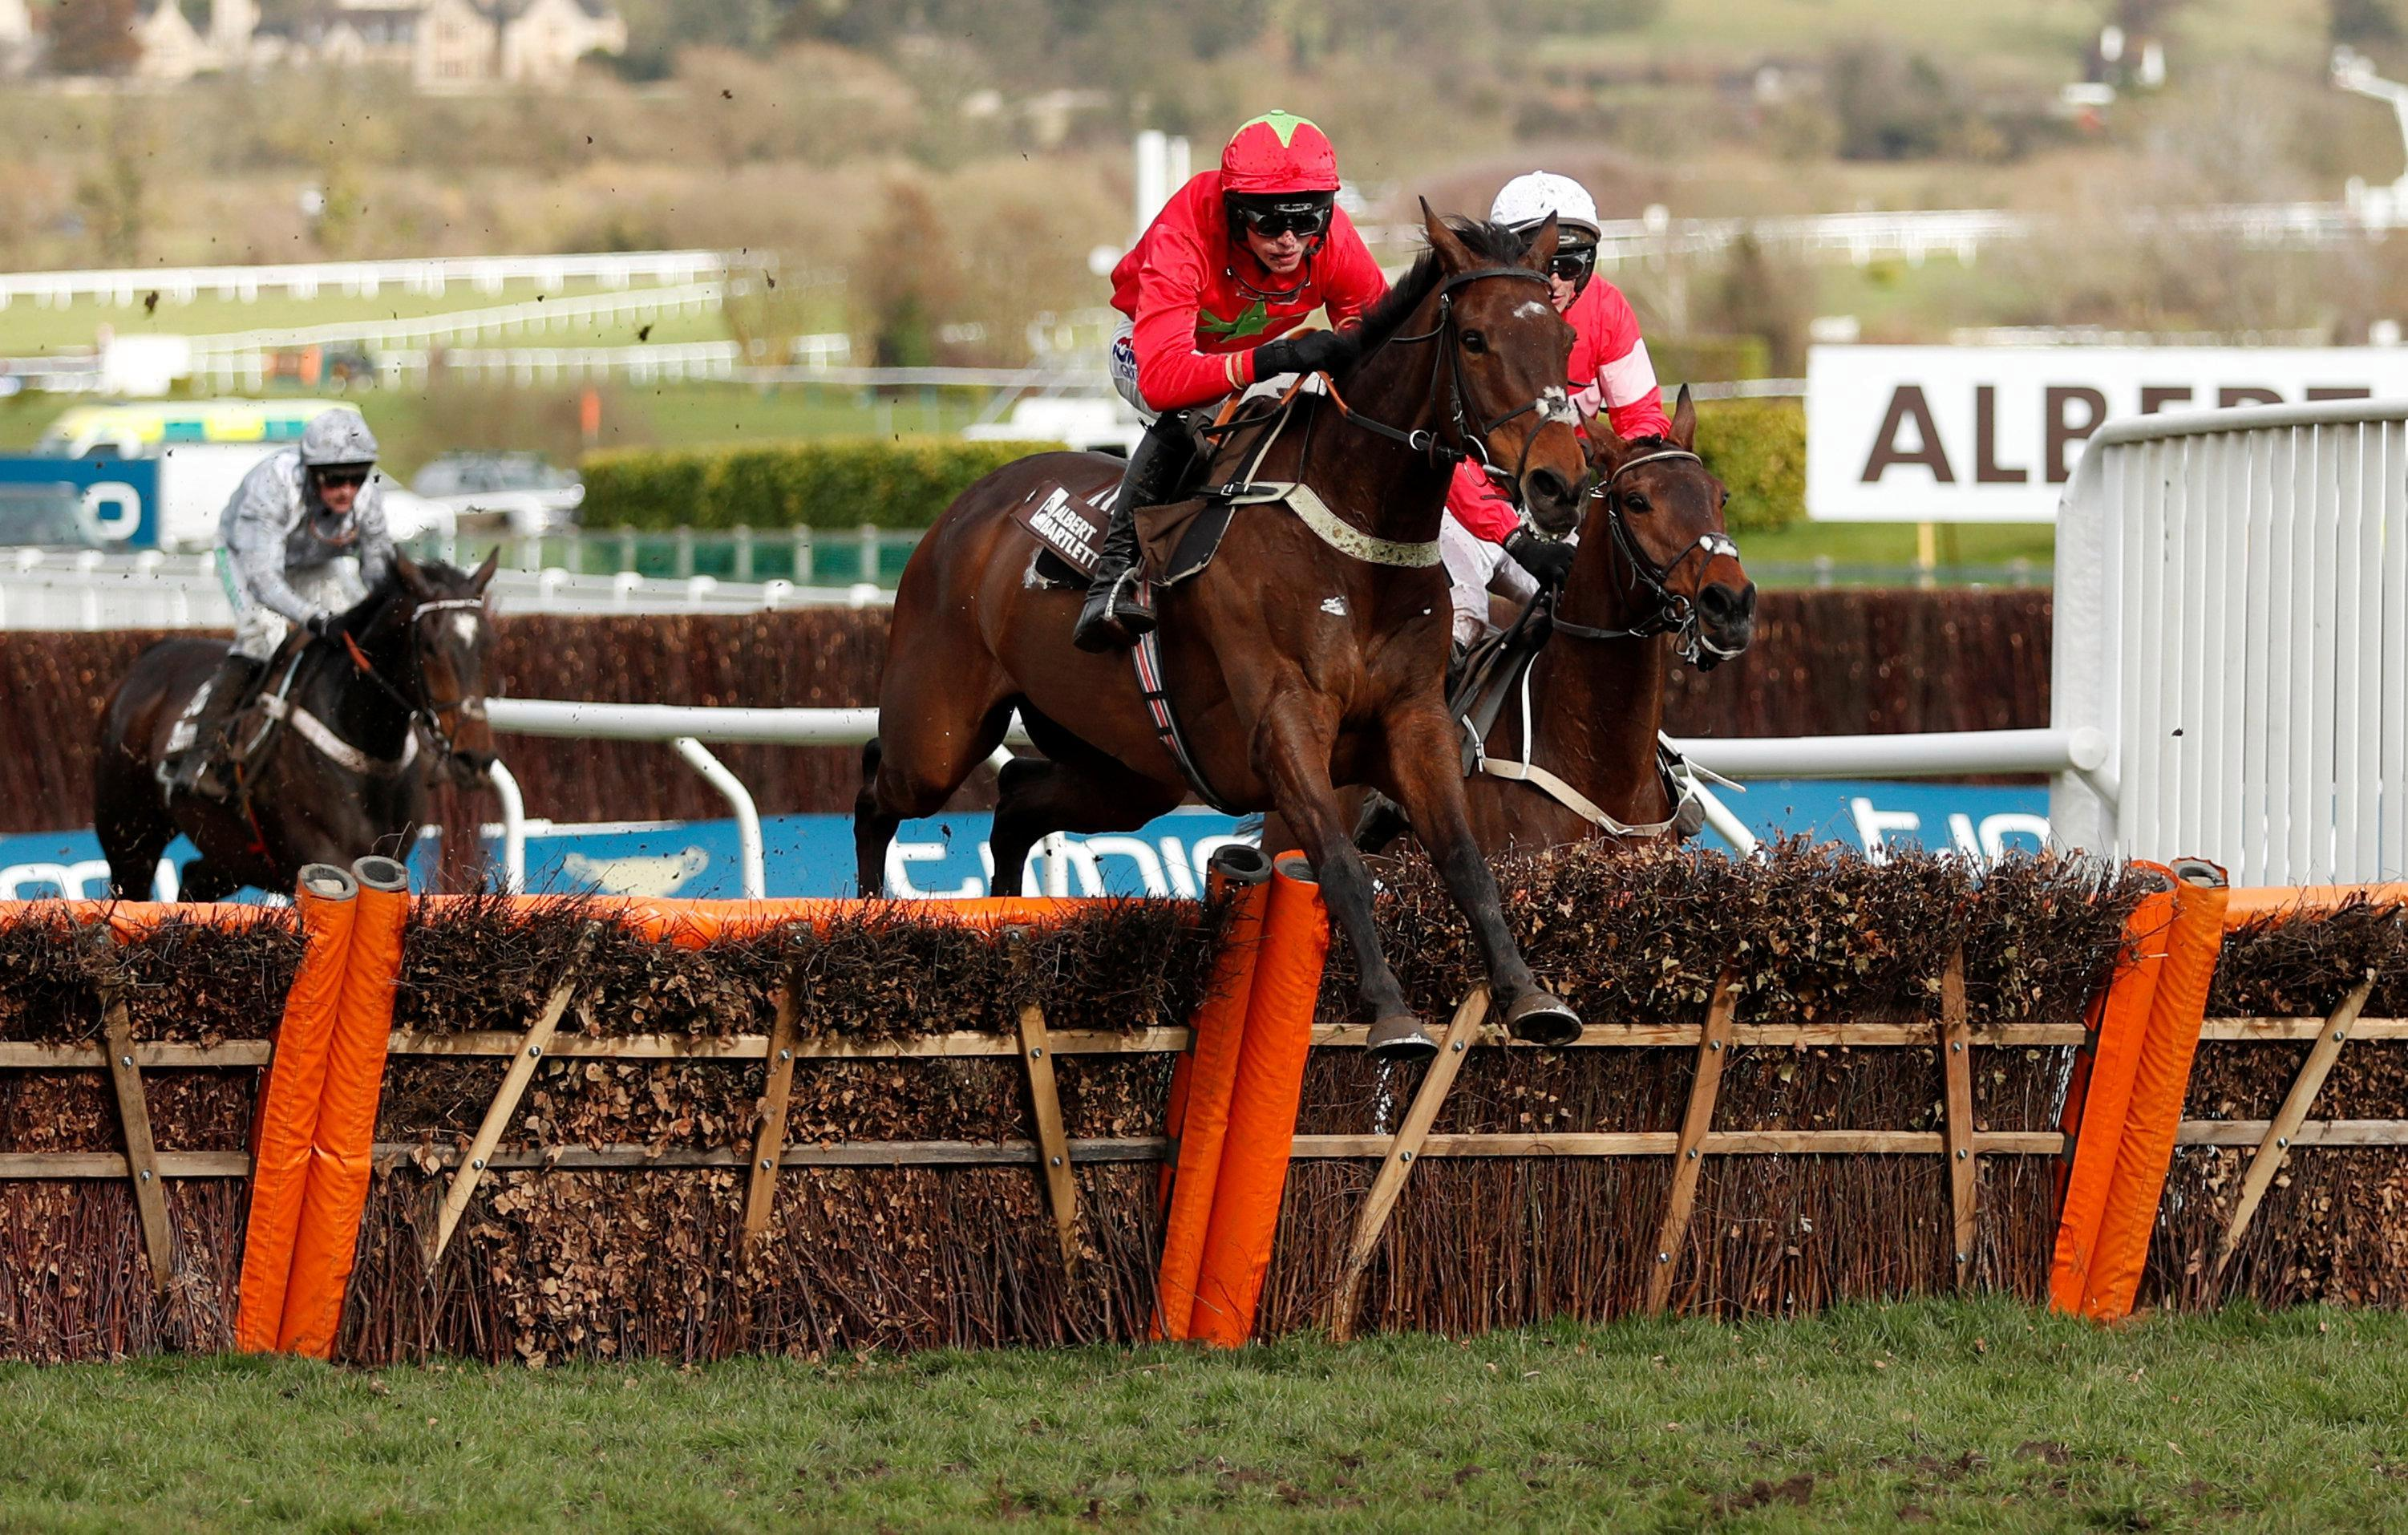 Cheltenham Festival 2019: Albert Bartlett Novices' Hurdle preview, tv schedule, race time, tips, runners and riders and odds